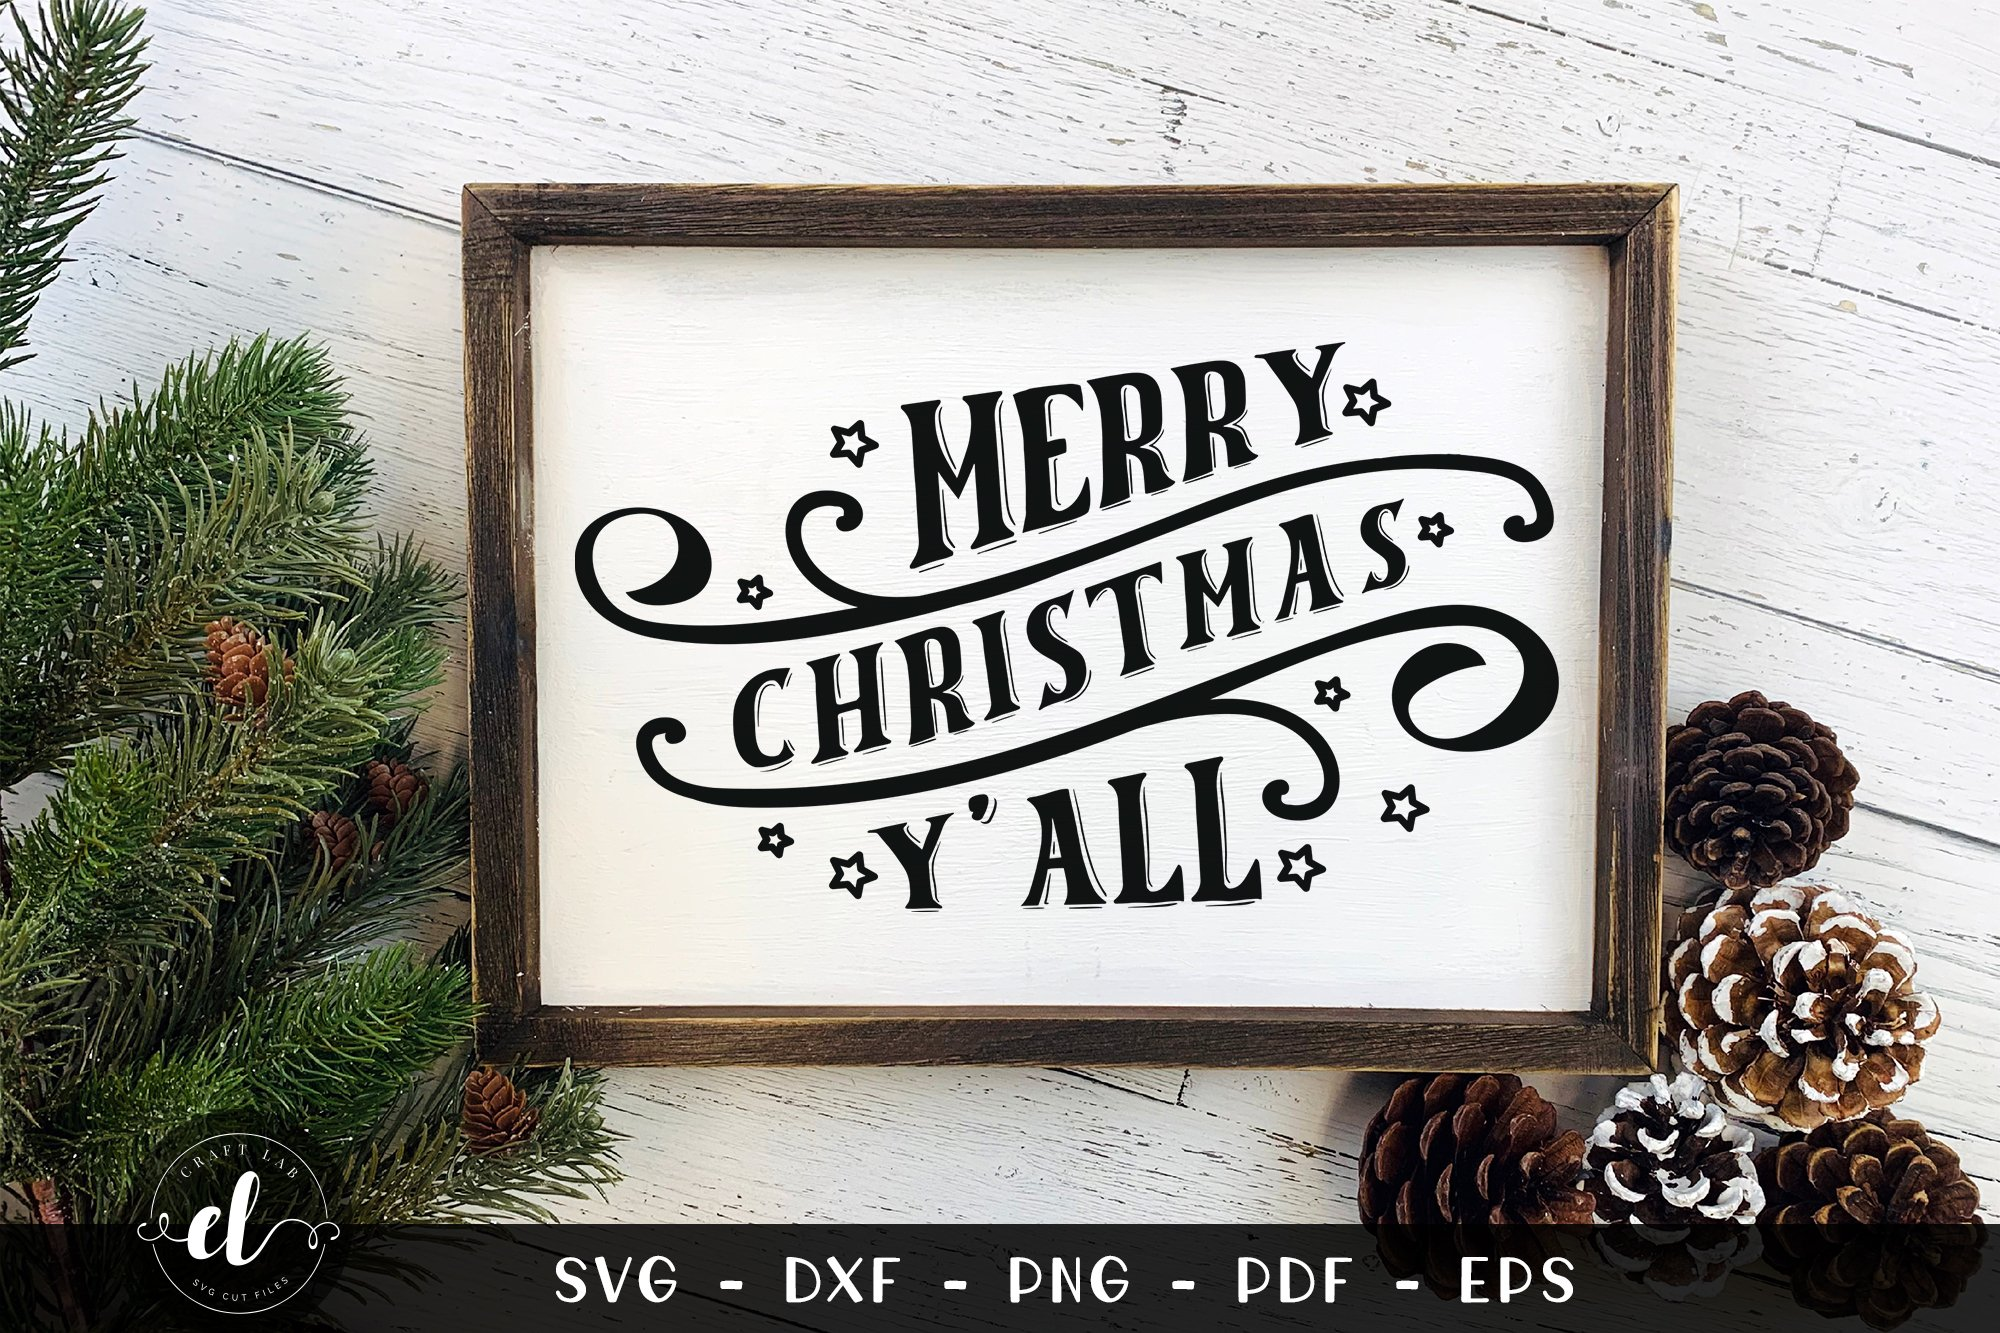 Merry Christmas Y All Christmas Svg Dxf Png Pdf Eps 833230 Cut Files Design Bundles